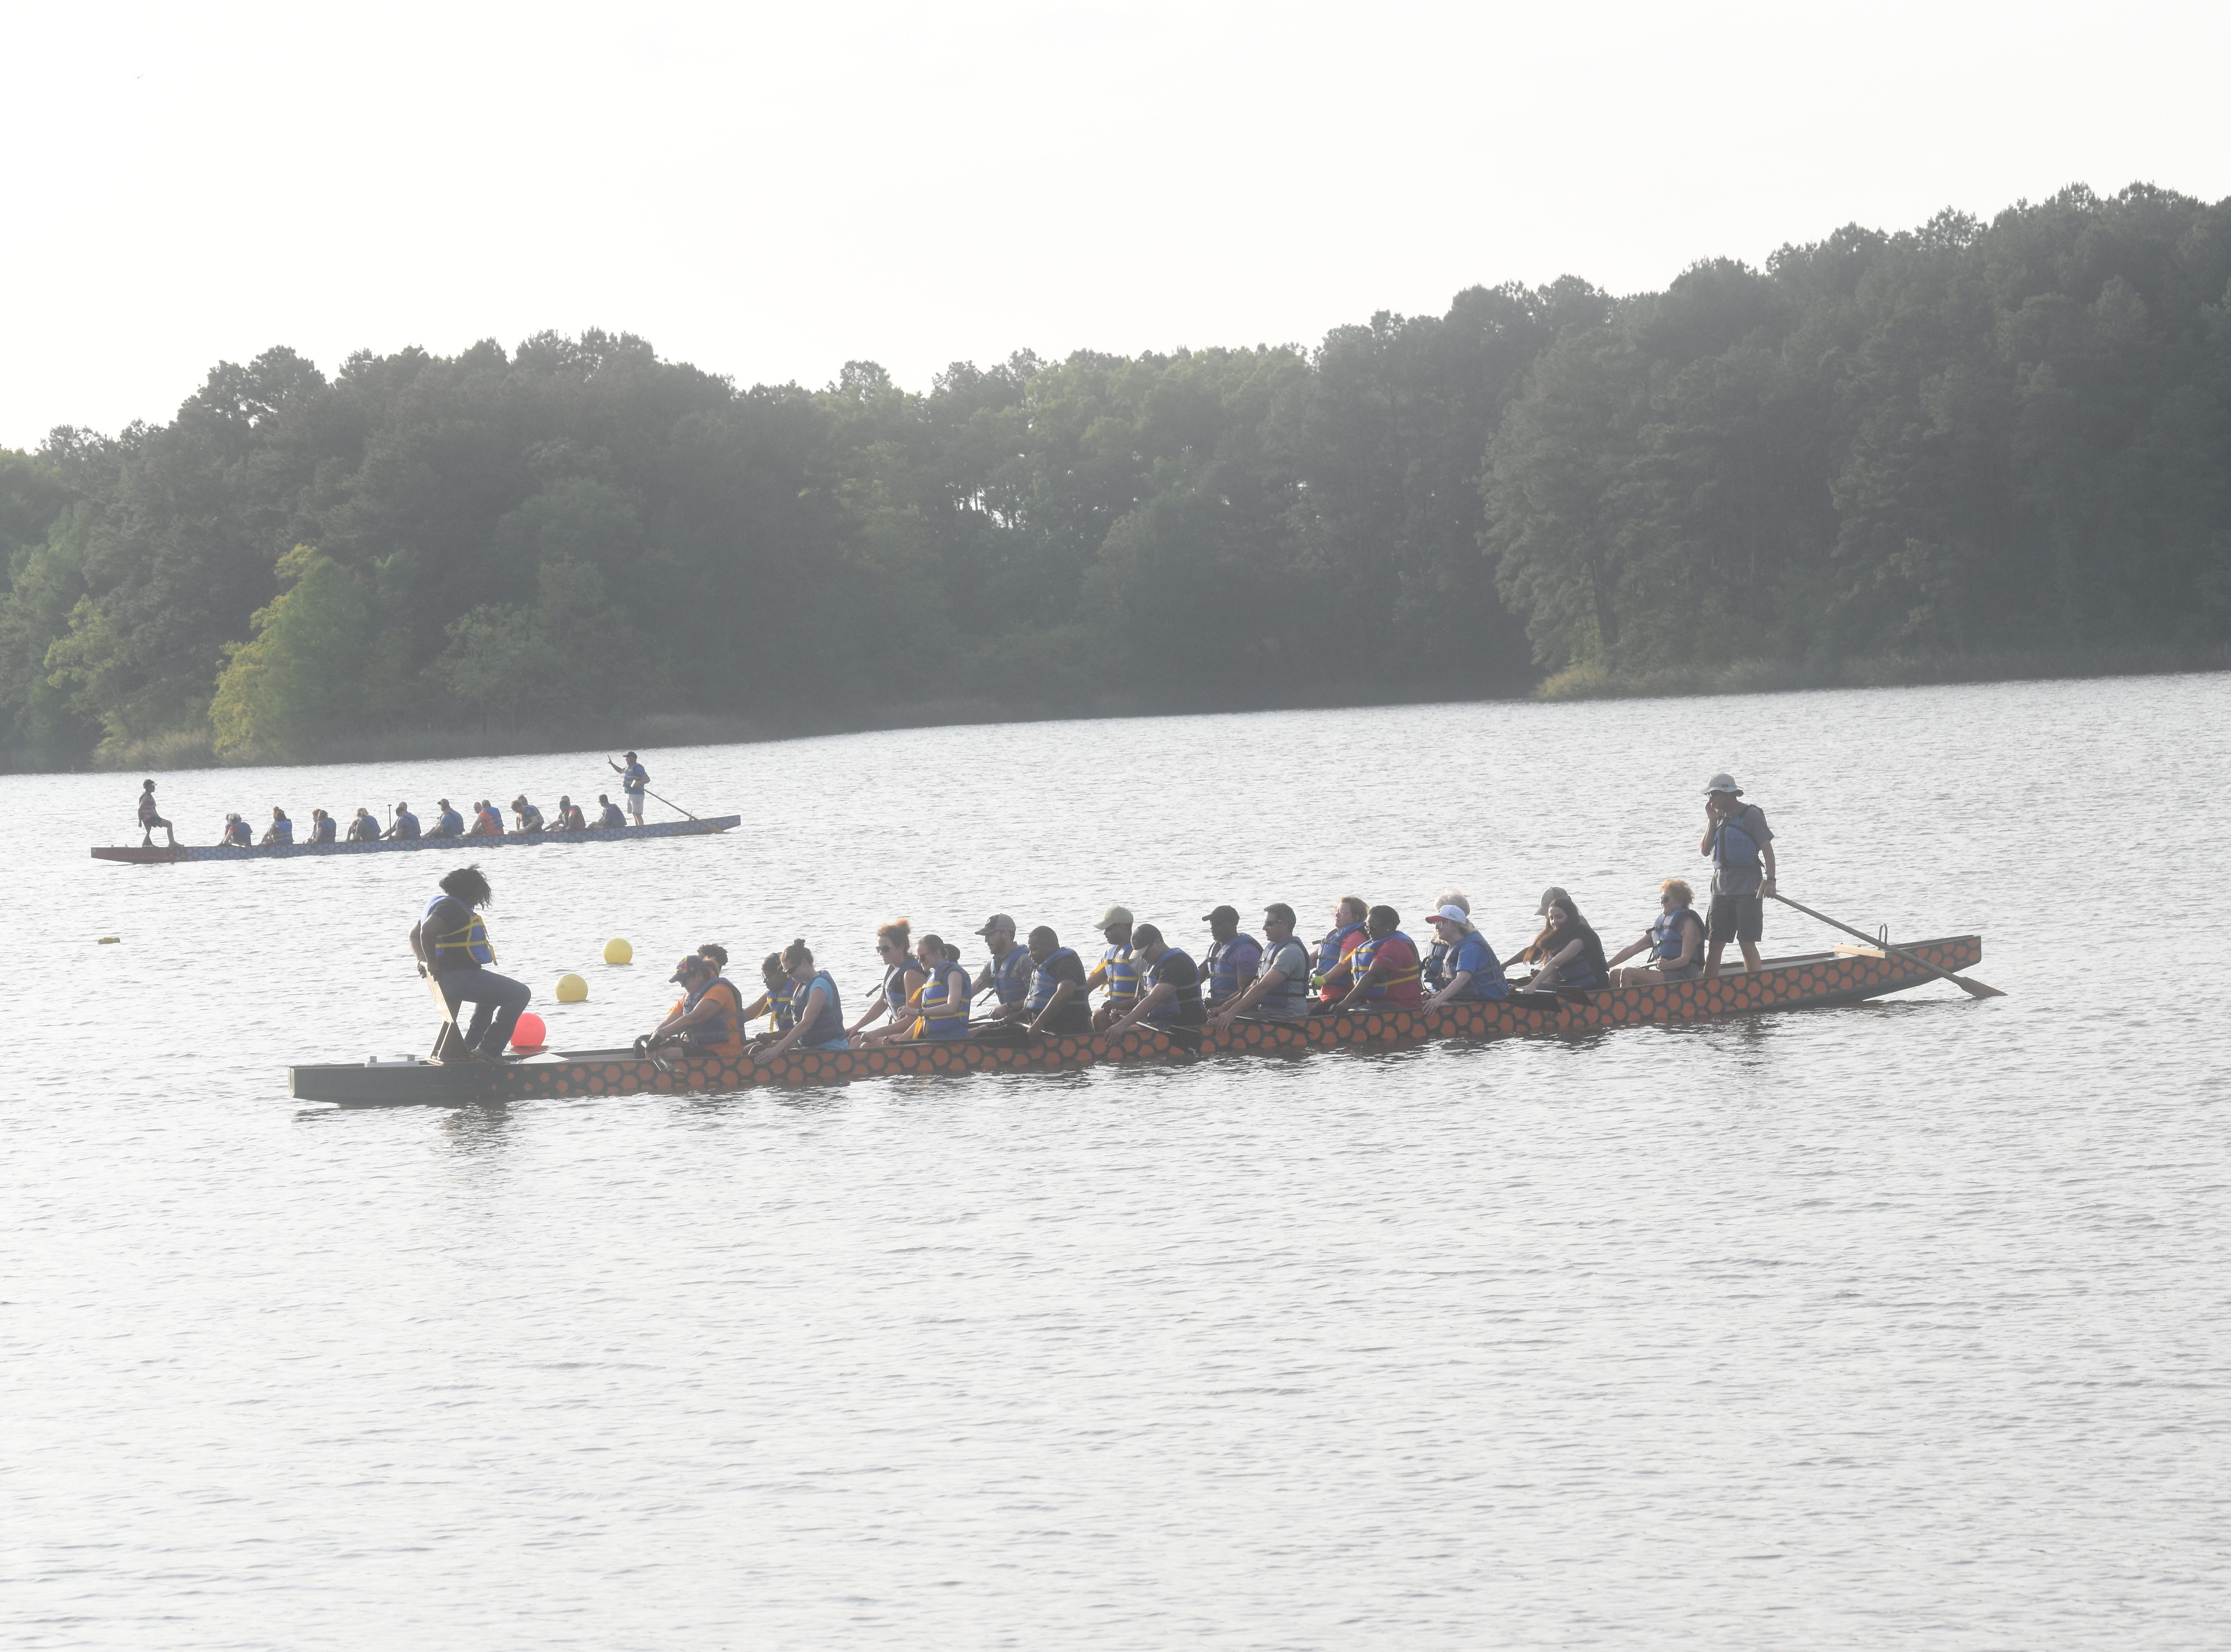 Dragon boat practices are being held this week at Lake Buhlow in Pineville in preparation for Saturday's 2019 Louisiana Dragon Boat Races. Nineteen local teams will be competing in the event that is a fundraiser for the Alexandria Museum of Art. This is the ninth year for the event. On Tuesday, the student team from LSUA; the Procter & Gamble team; the Walker Automotive team and Emmanuel Baptist Church team were practicing. Emmanuel Baptist Church won the races in 2018. The event at Buhlow begins at 9 a.m. and is free for spectators.